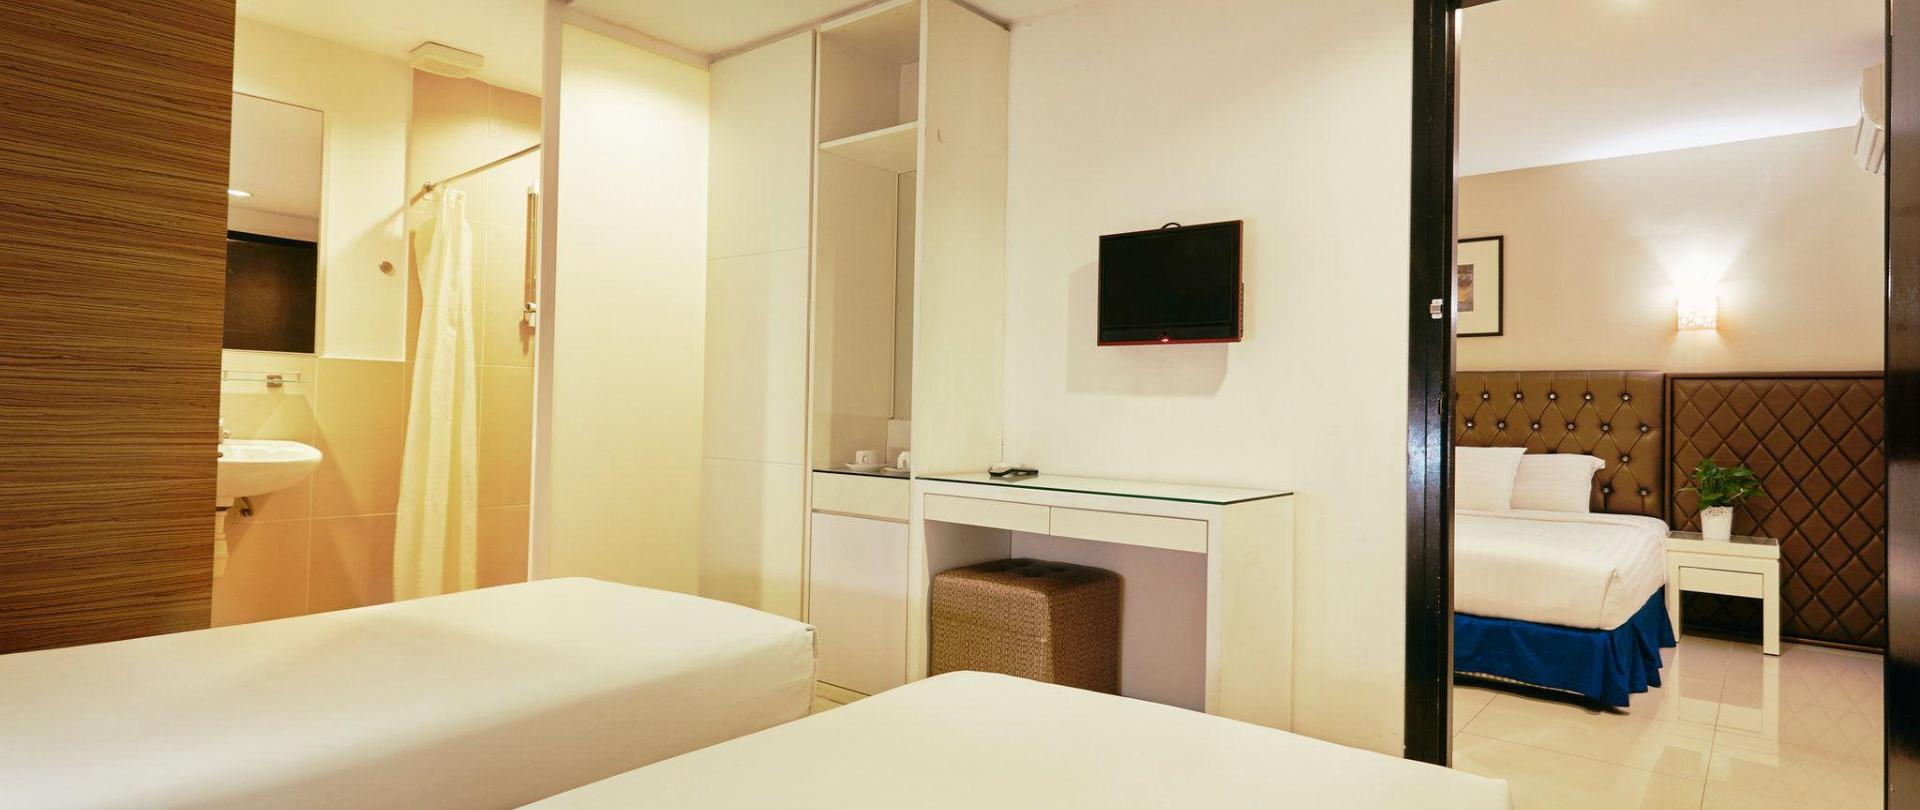 family-sute-4-single-bed-connecting-room-1.jpg